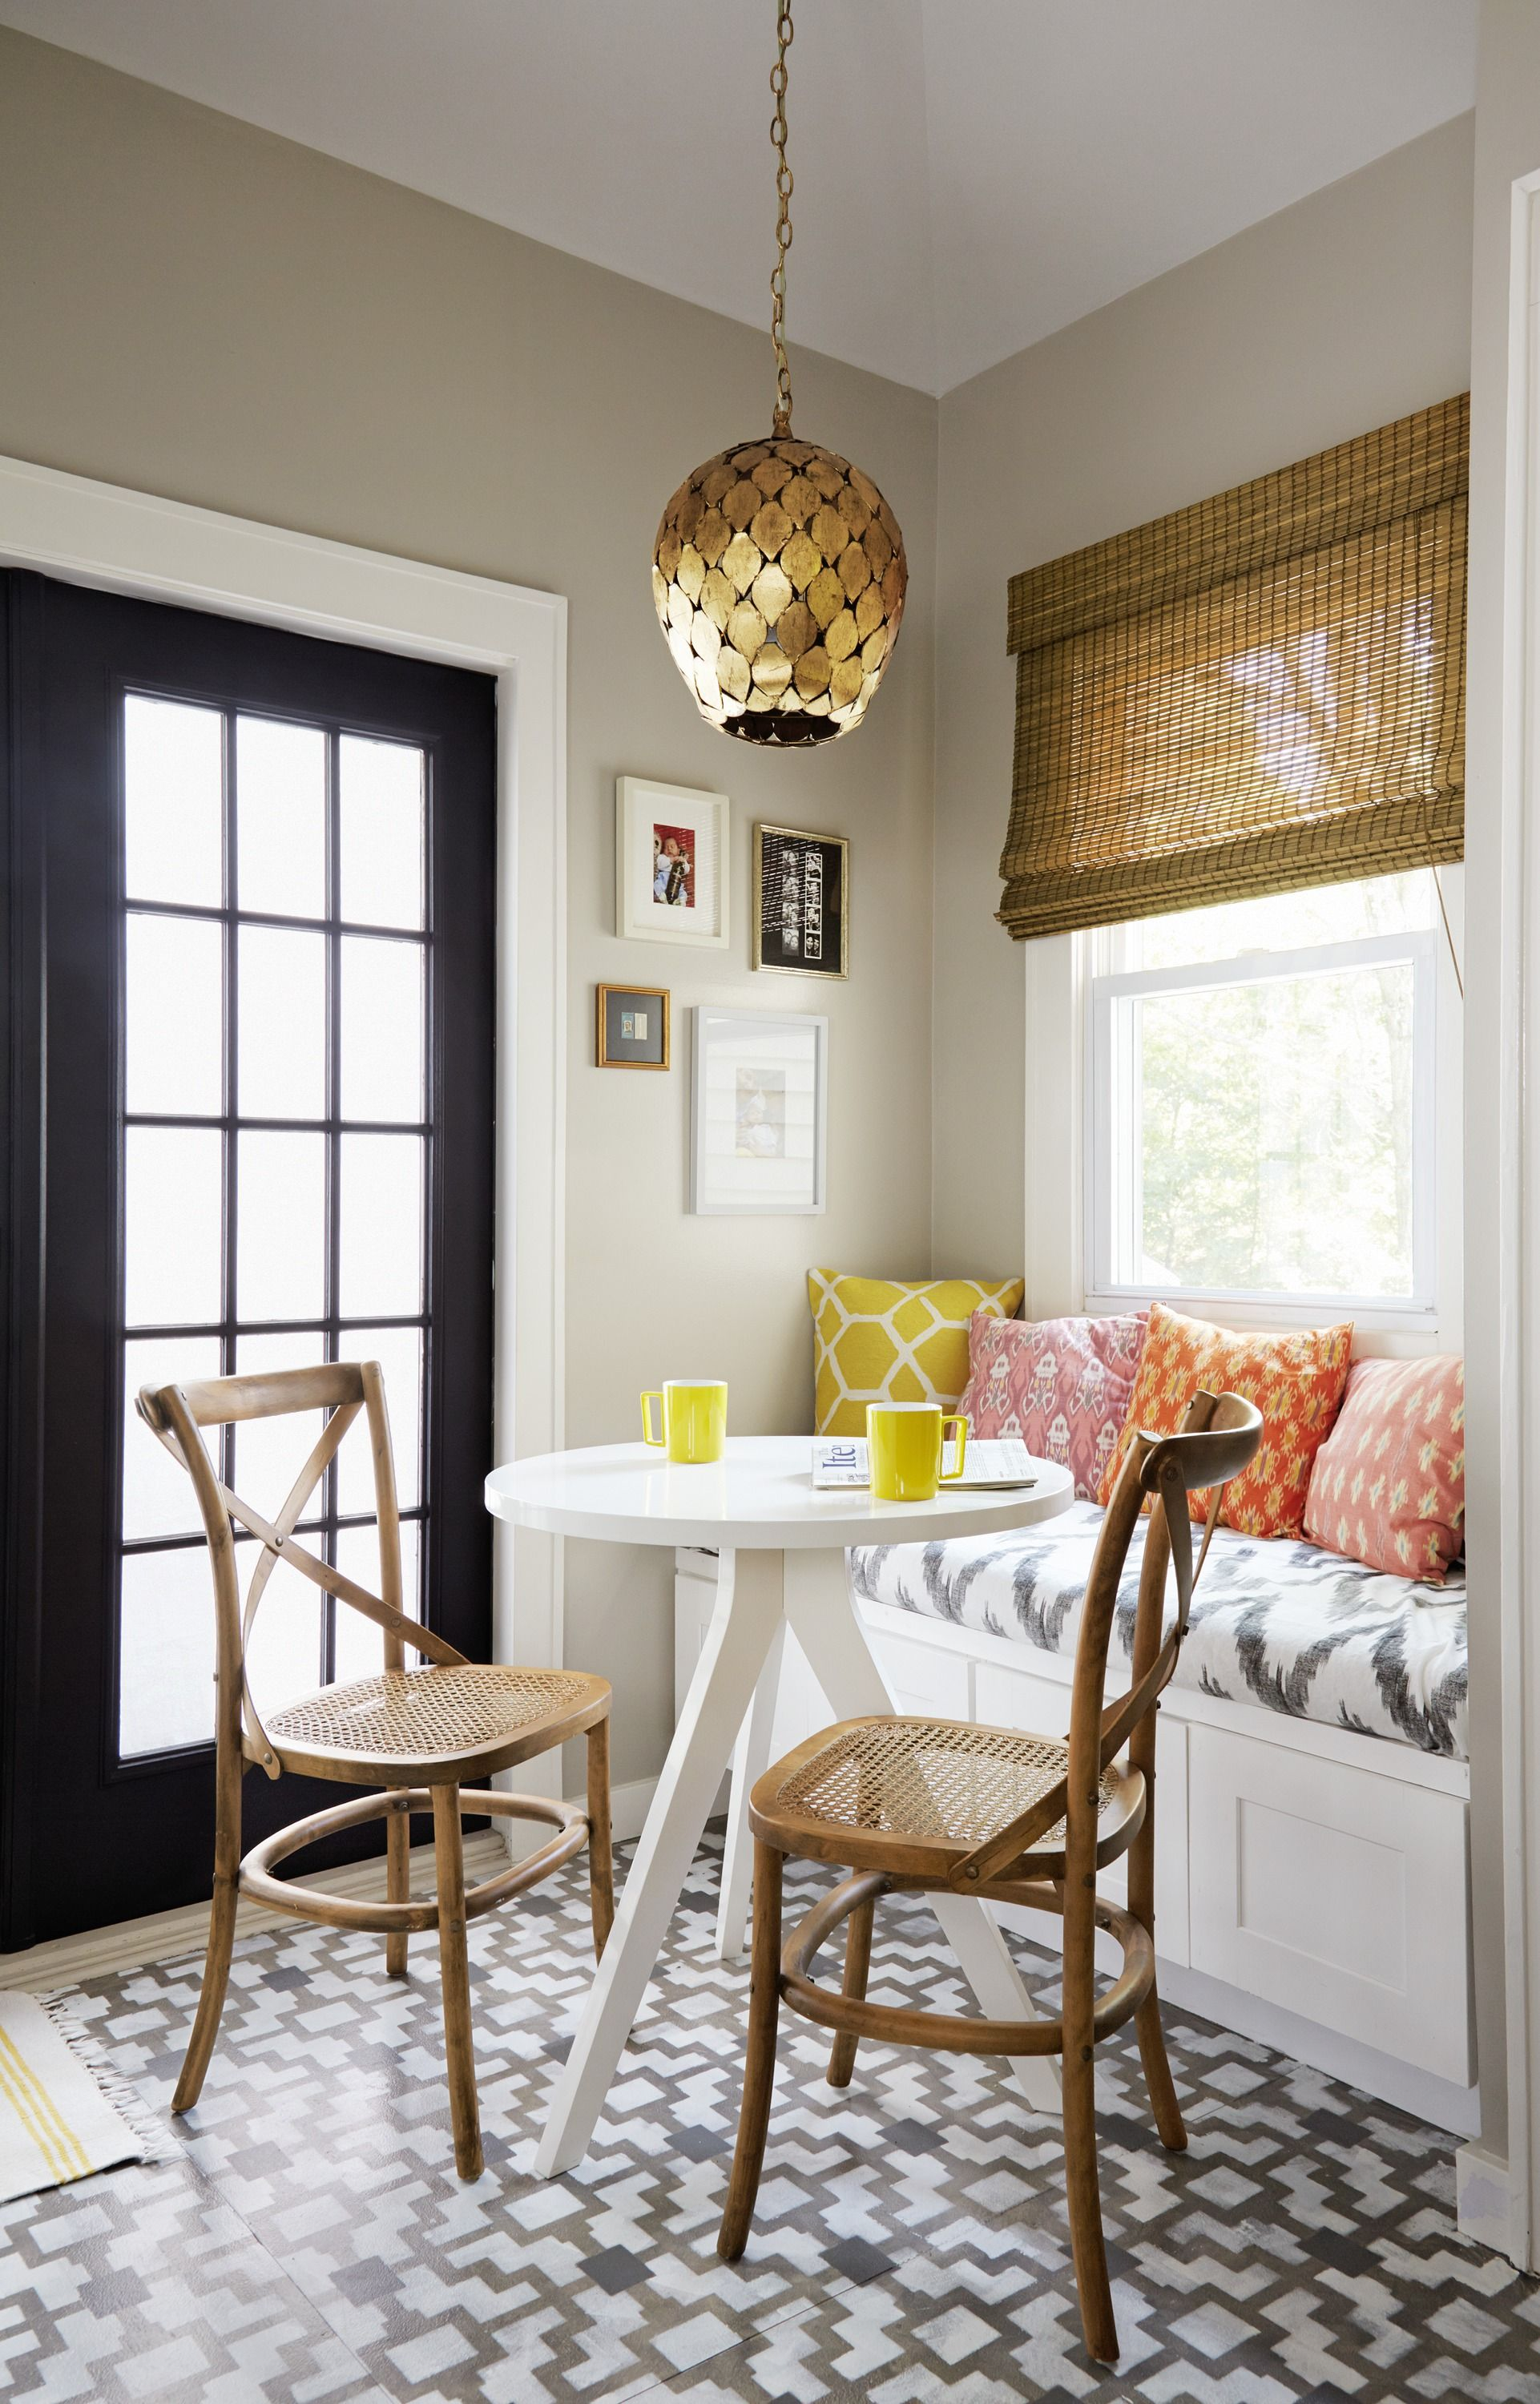 30 Best Dining Room Decorating Ideas Pictures Of Dining Room Decor